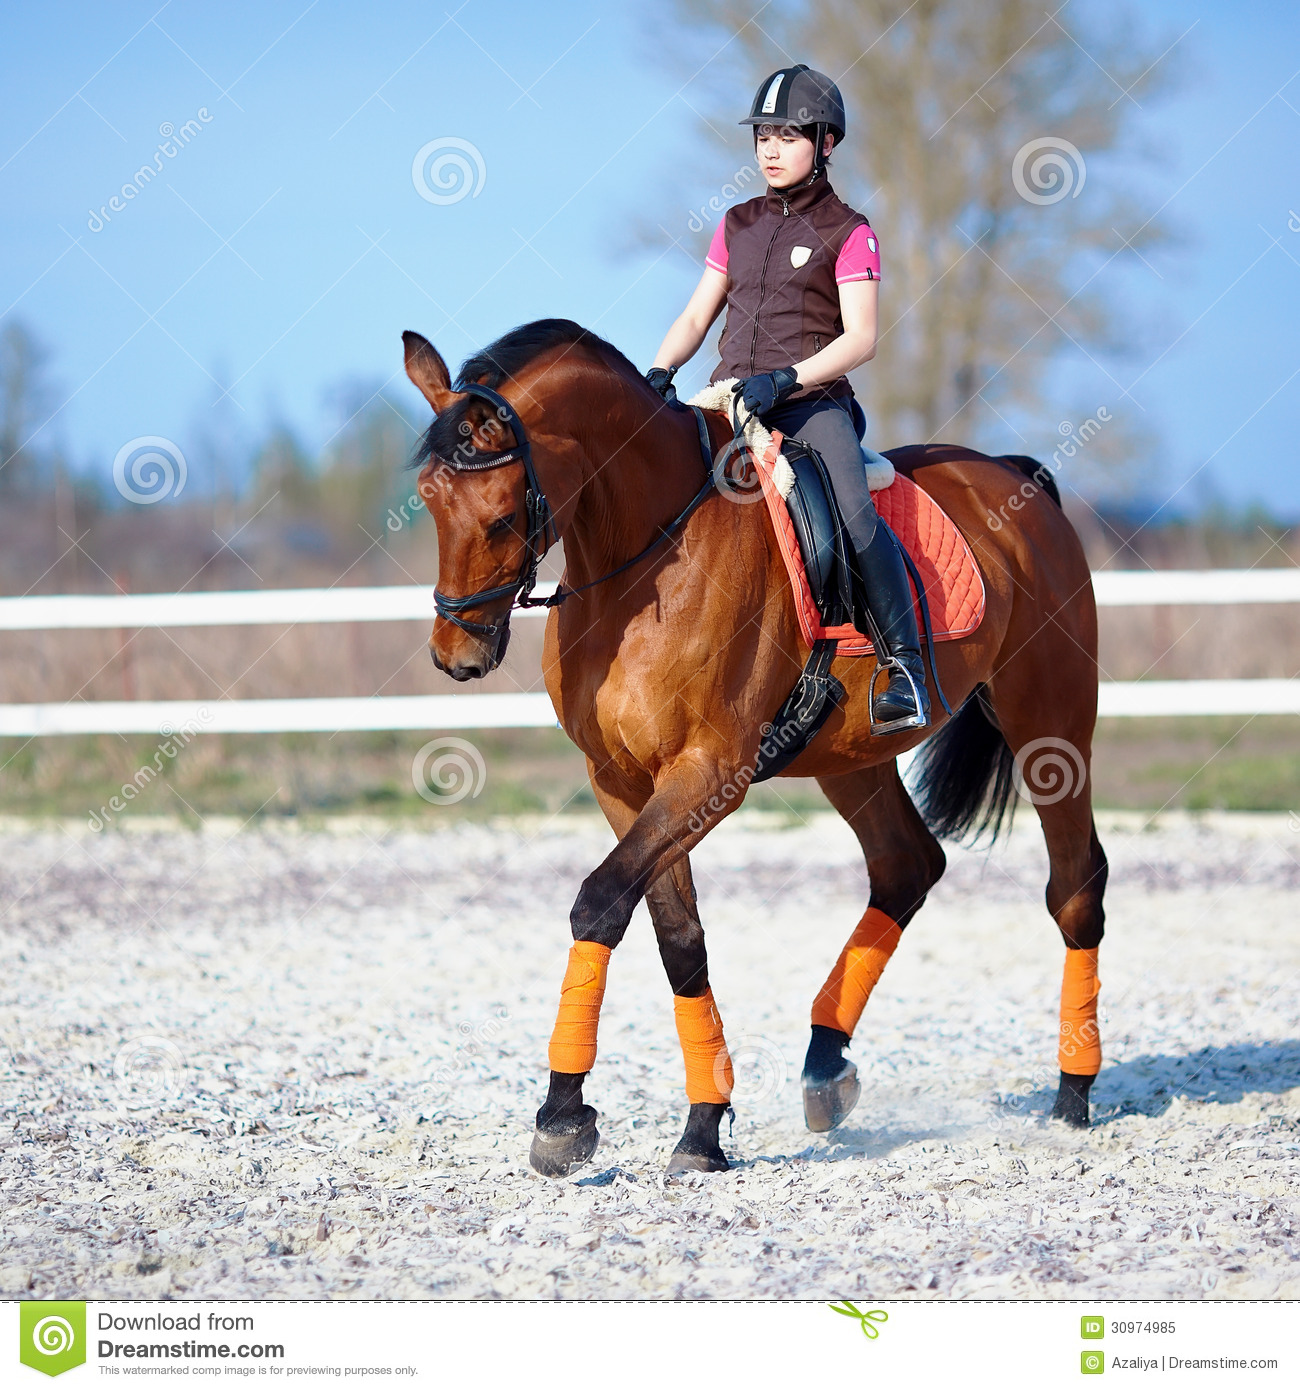 The Horsewoman On A Red Horse Royalty Free Stock Photo ...